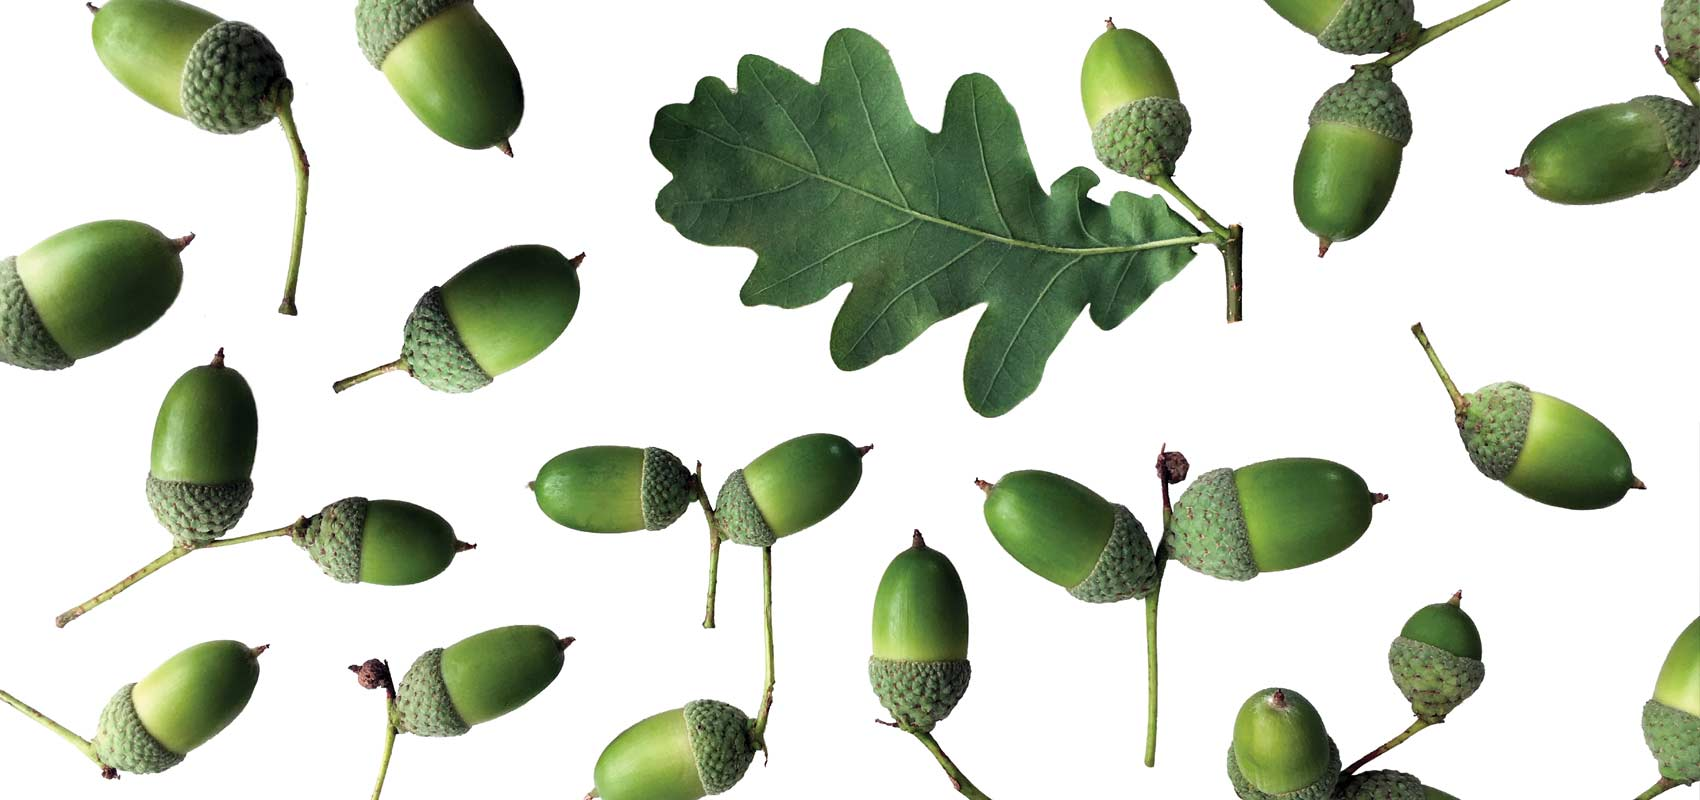 A repeating pattern made of green acorns and an acorn leaf on a white background